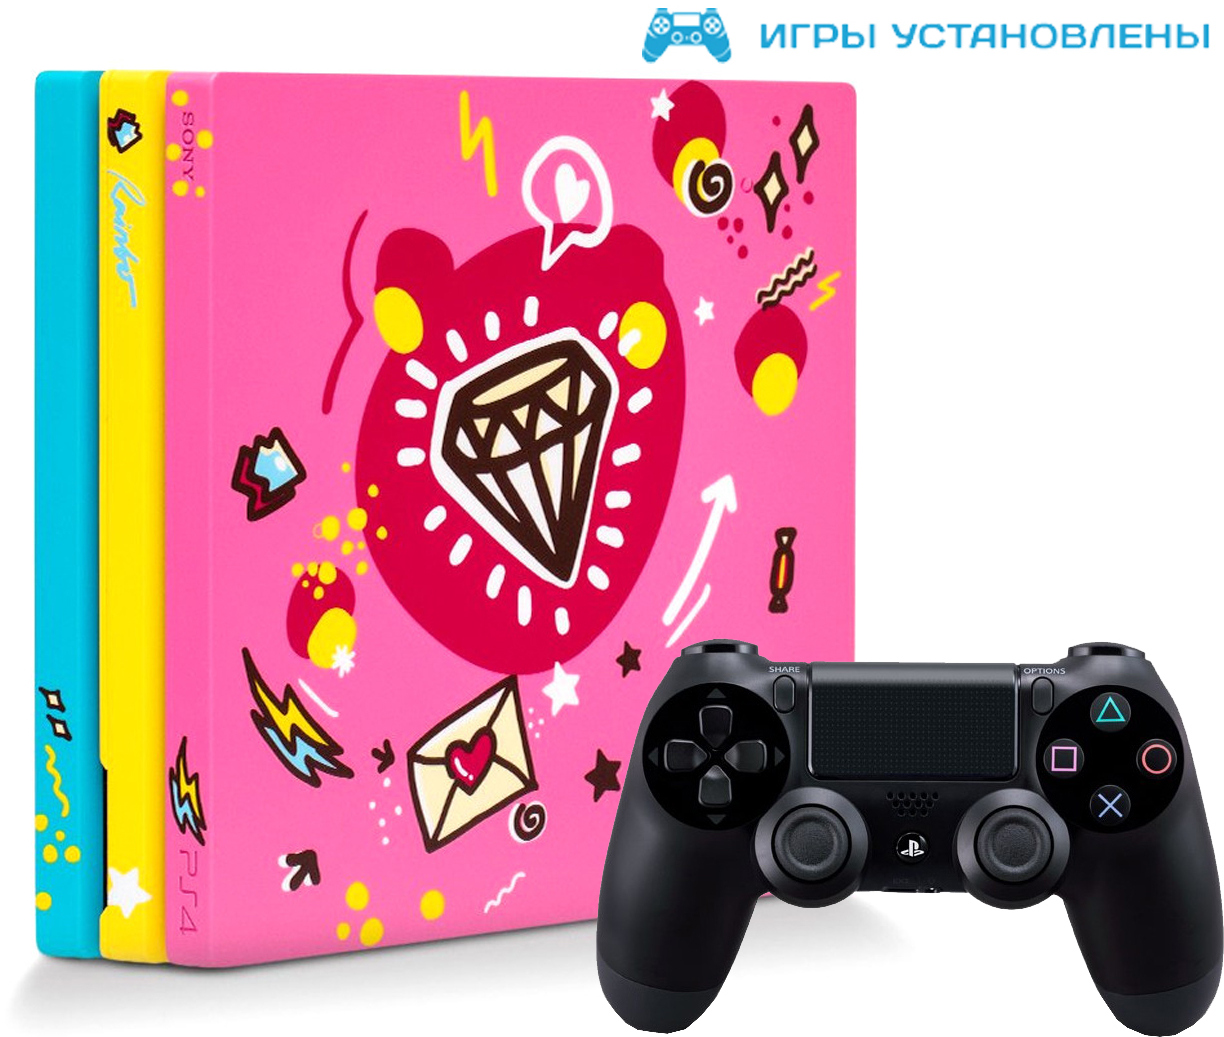 Игровая приставка Sony PlayStation 4 Pro 1Tb Sweet + Sony DualShock 4 v2 Black + игры